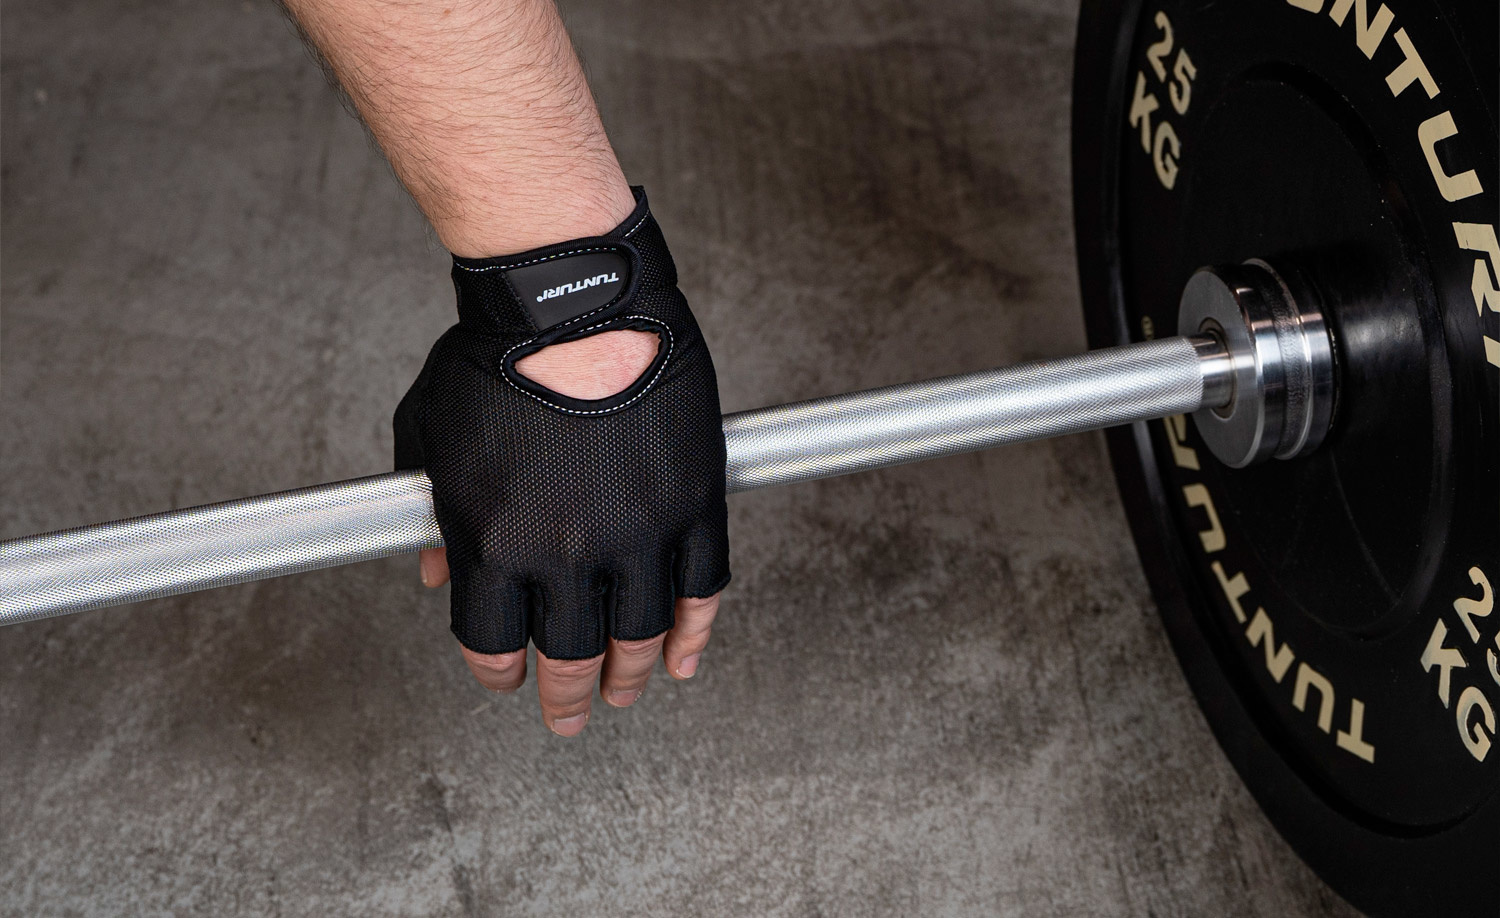 The importance of using support tools in strength training